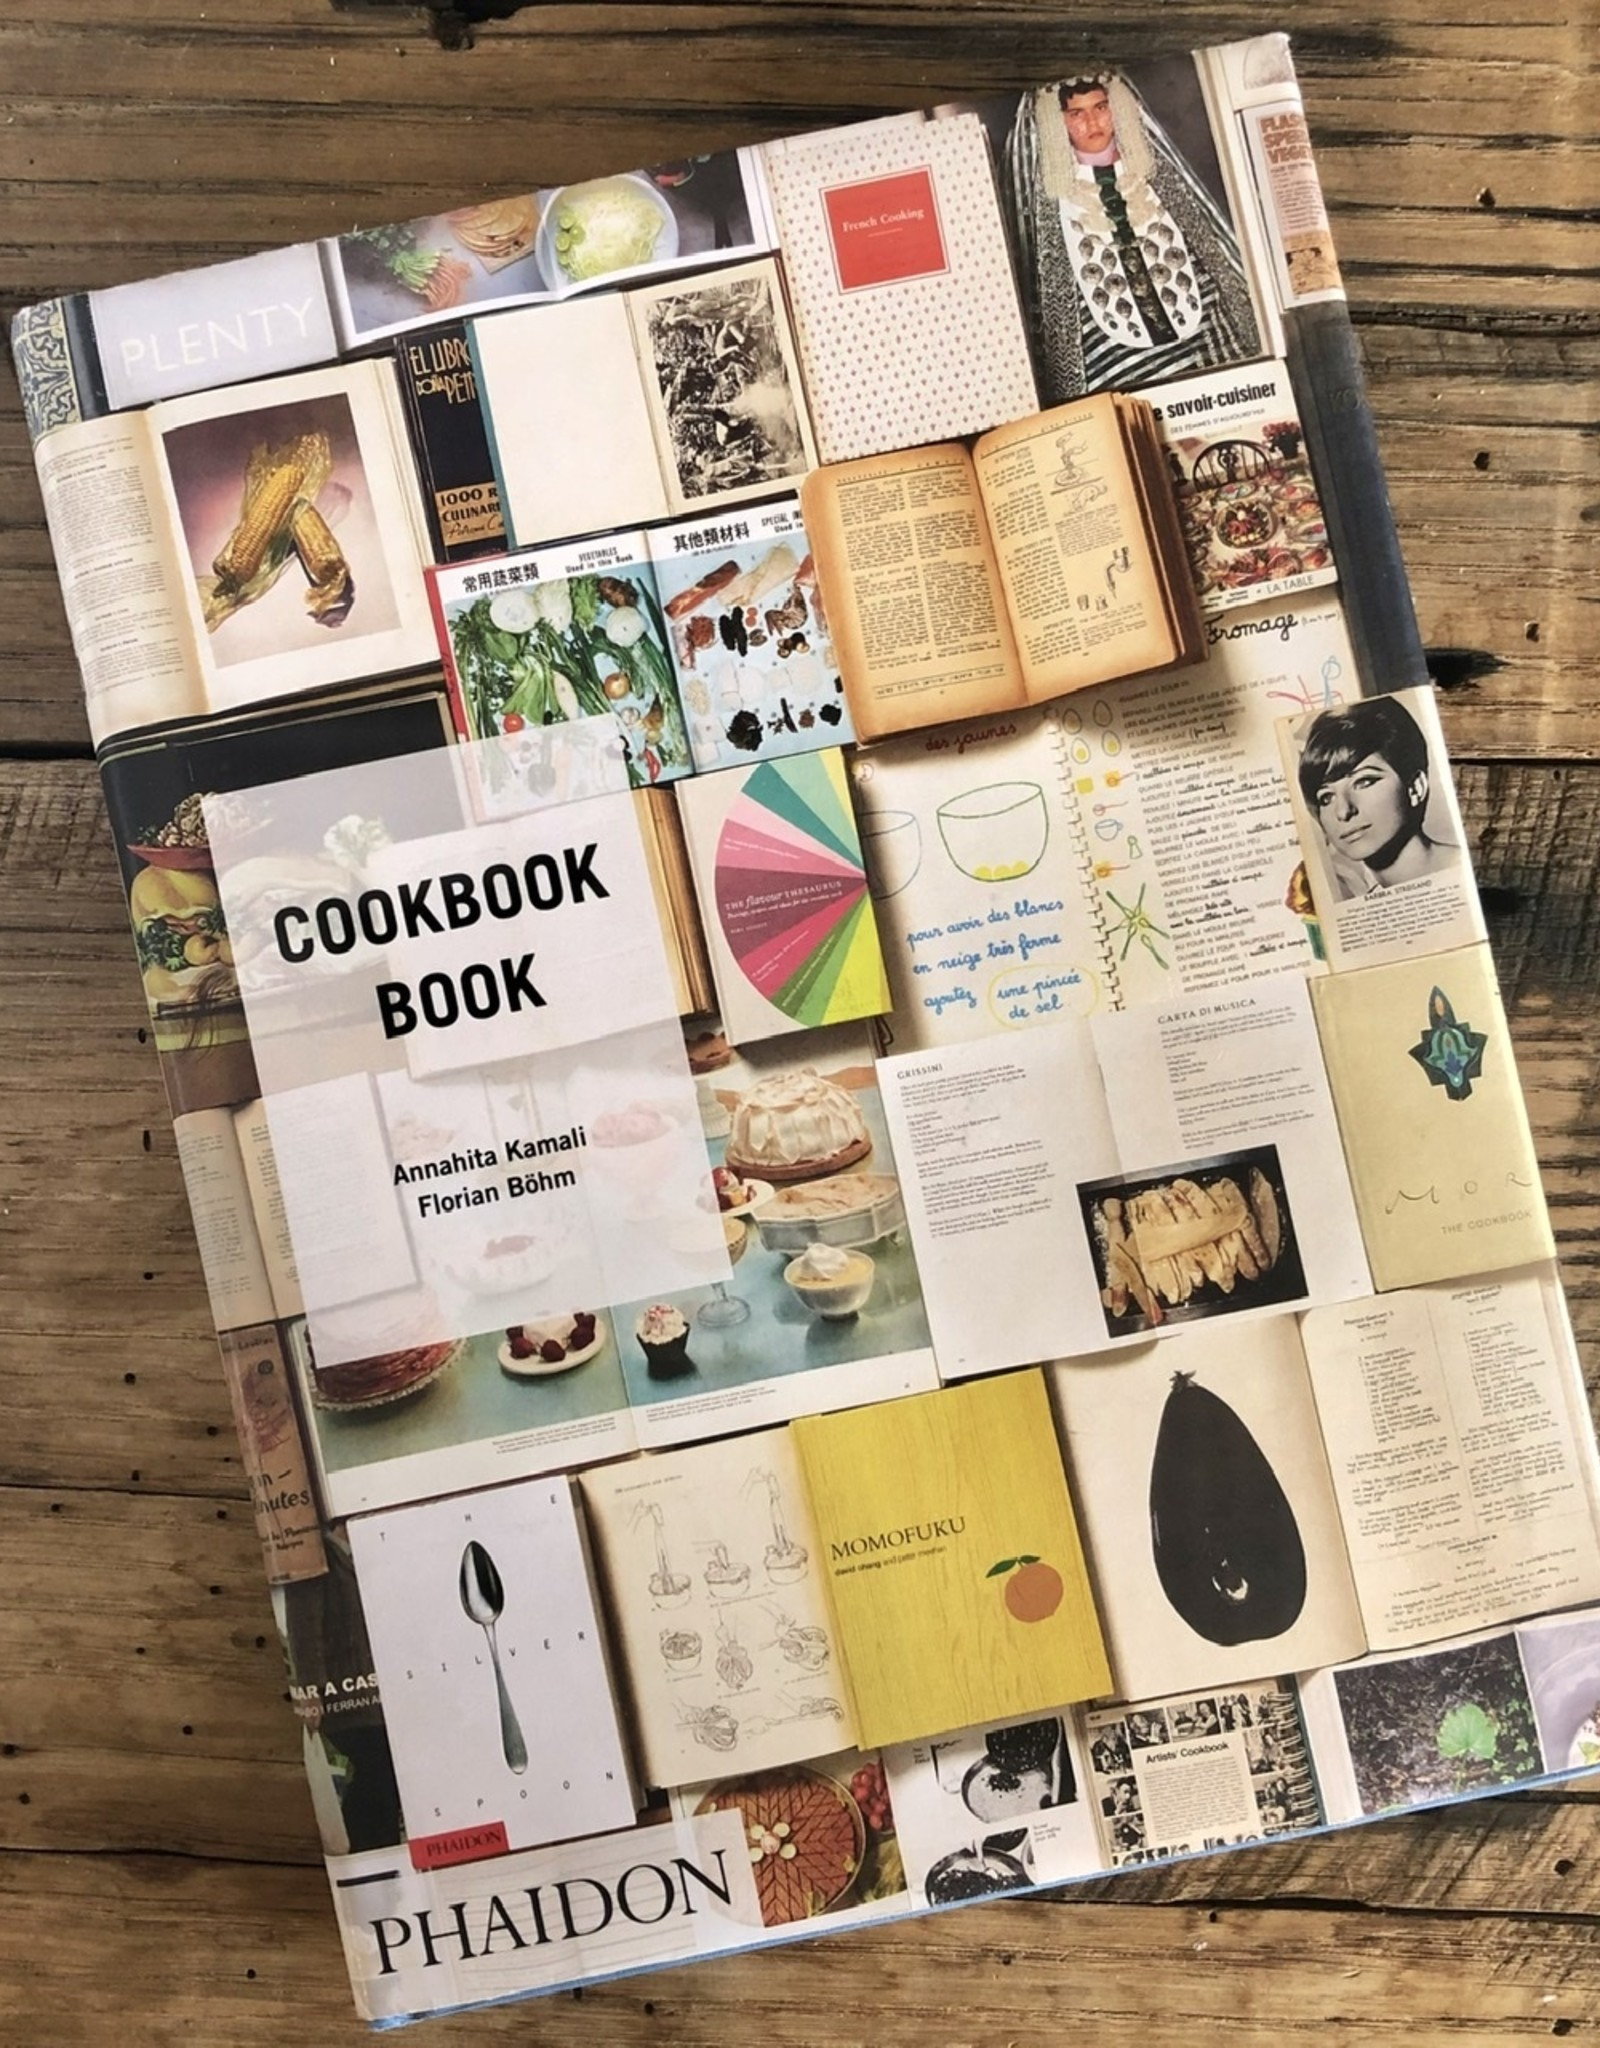 The Cookbook Book